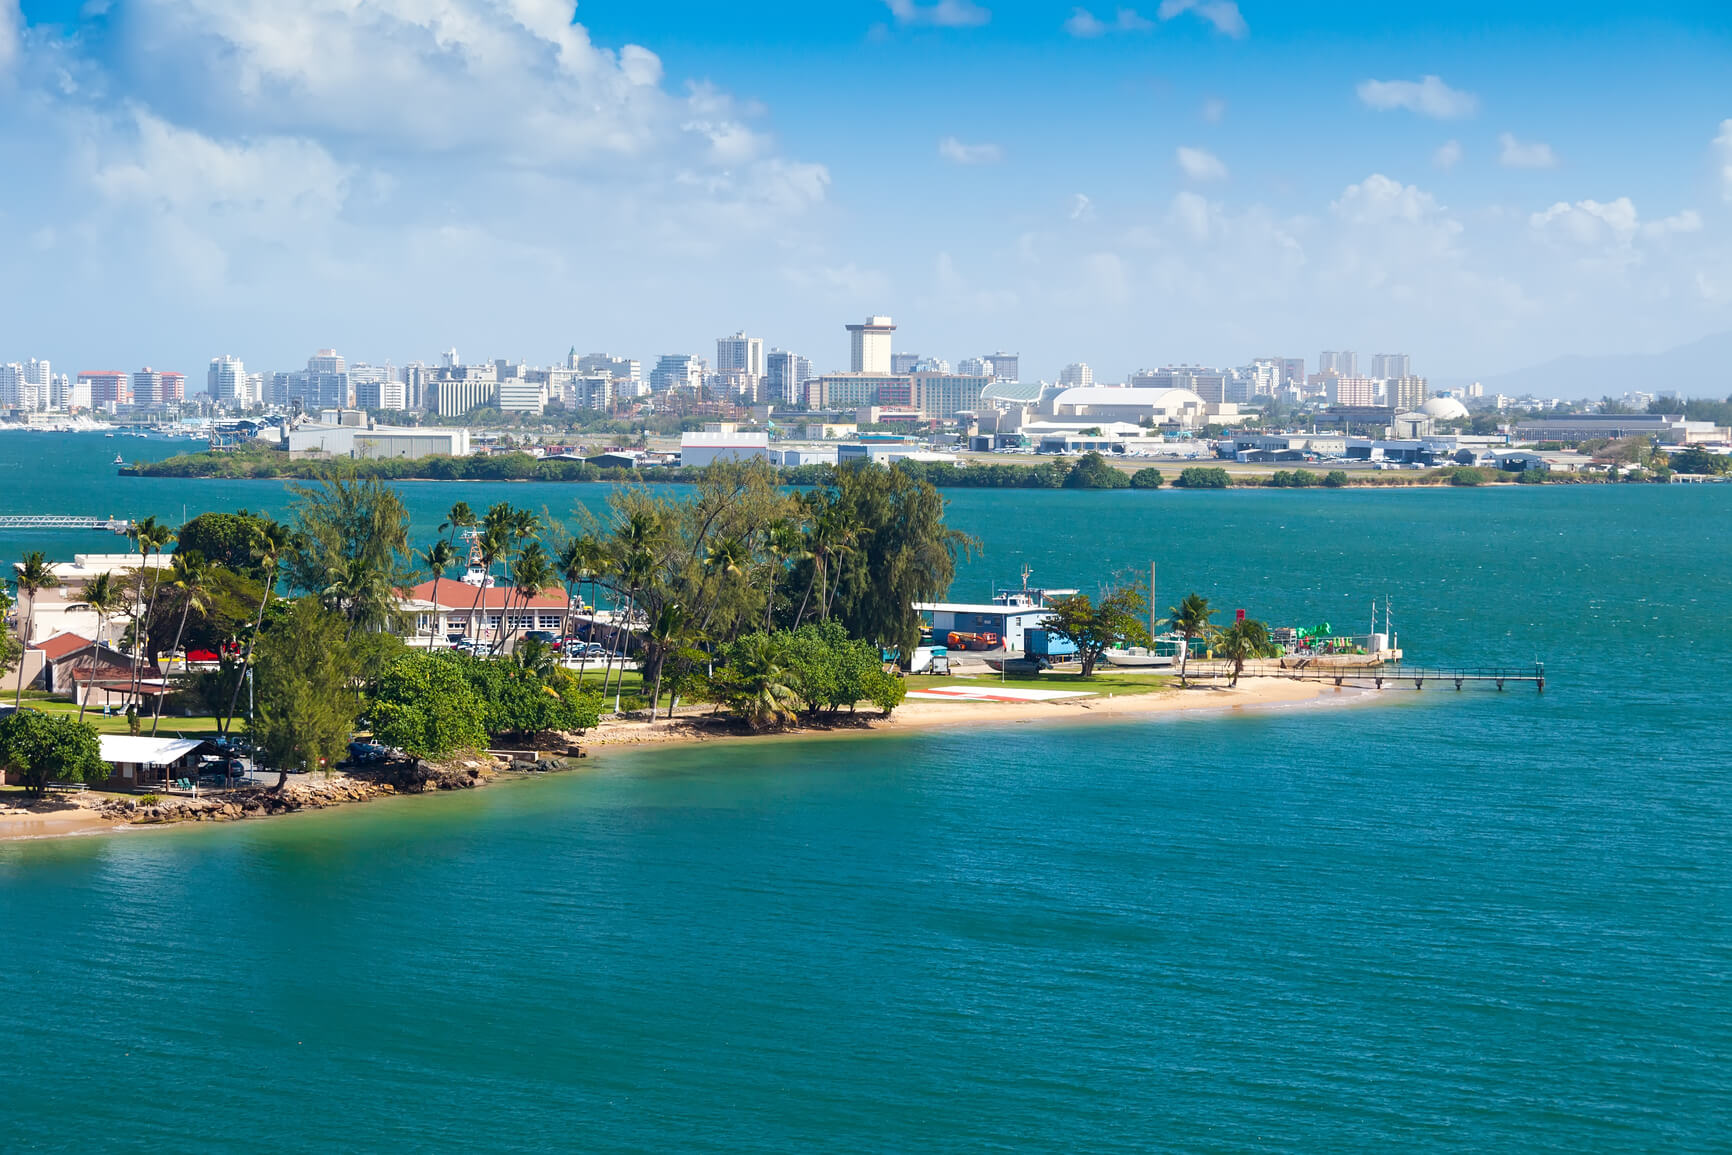 🚨 PRICE DROP 🚨 Non-stop from Washington DC to San Juan, Puerto Rico for only $156 roundtrip (Sep-Jan dates)